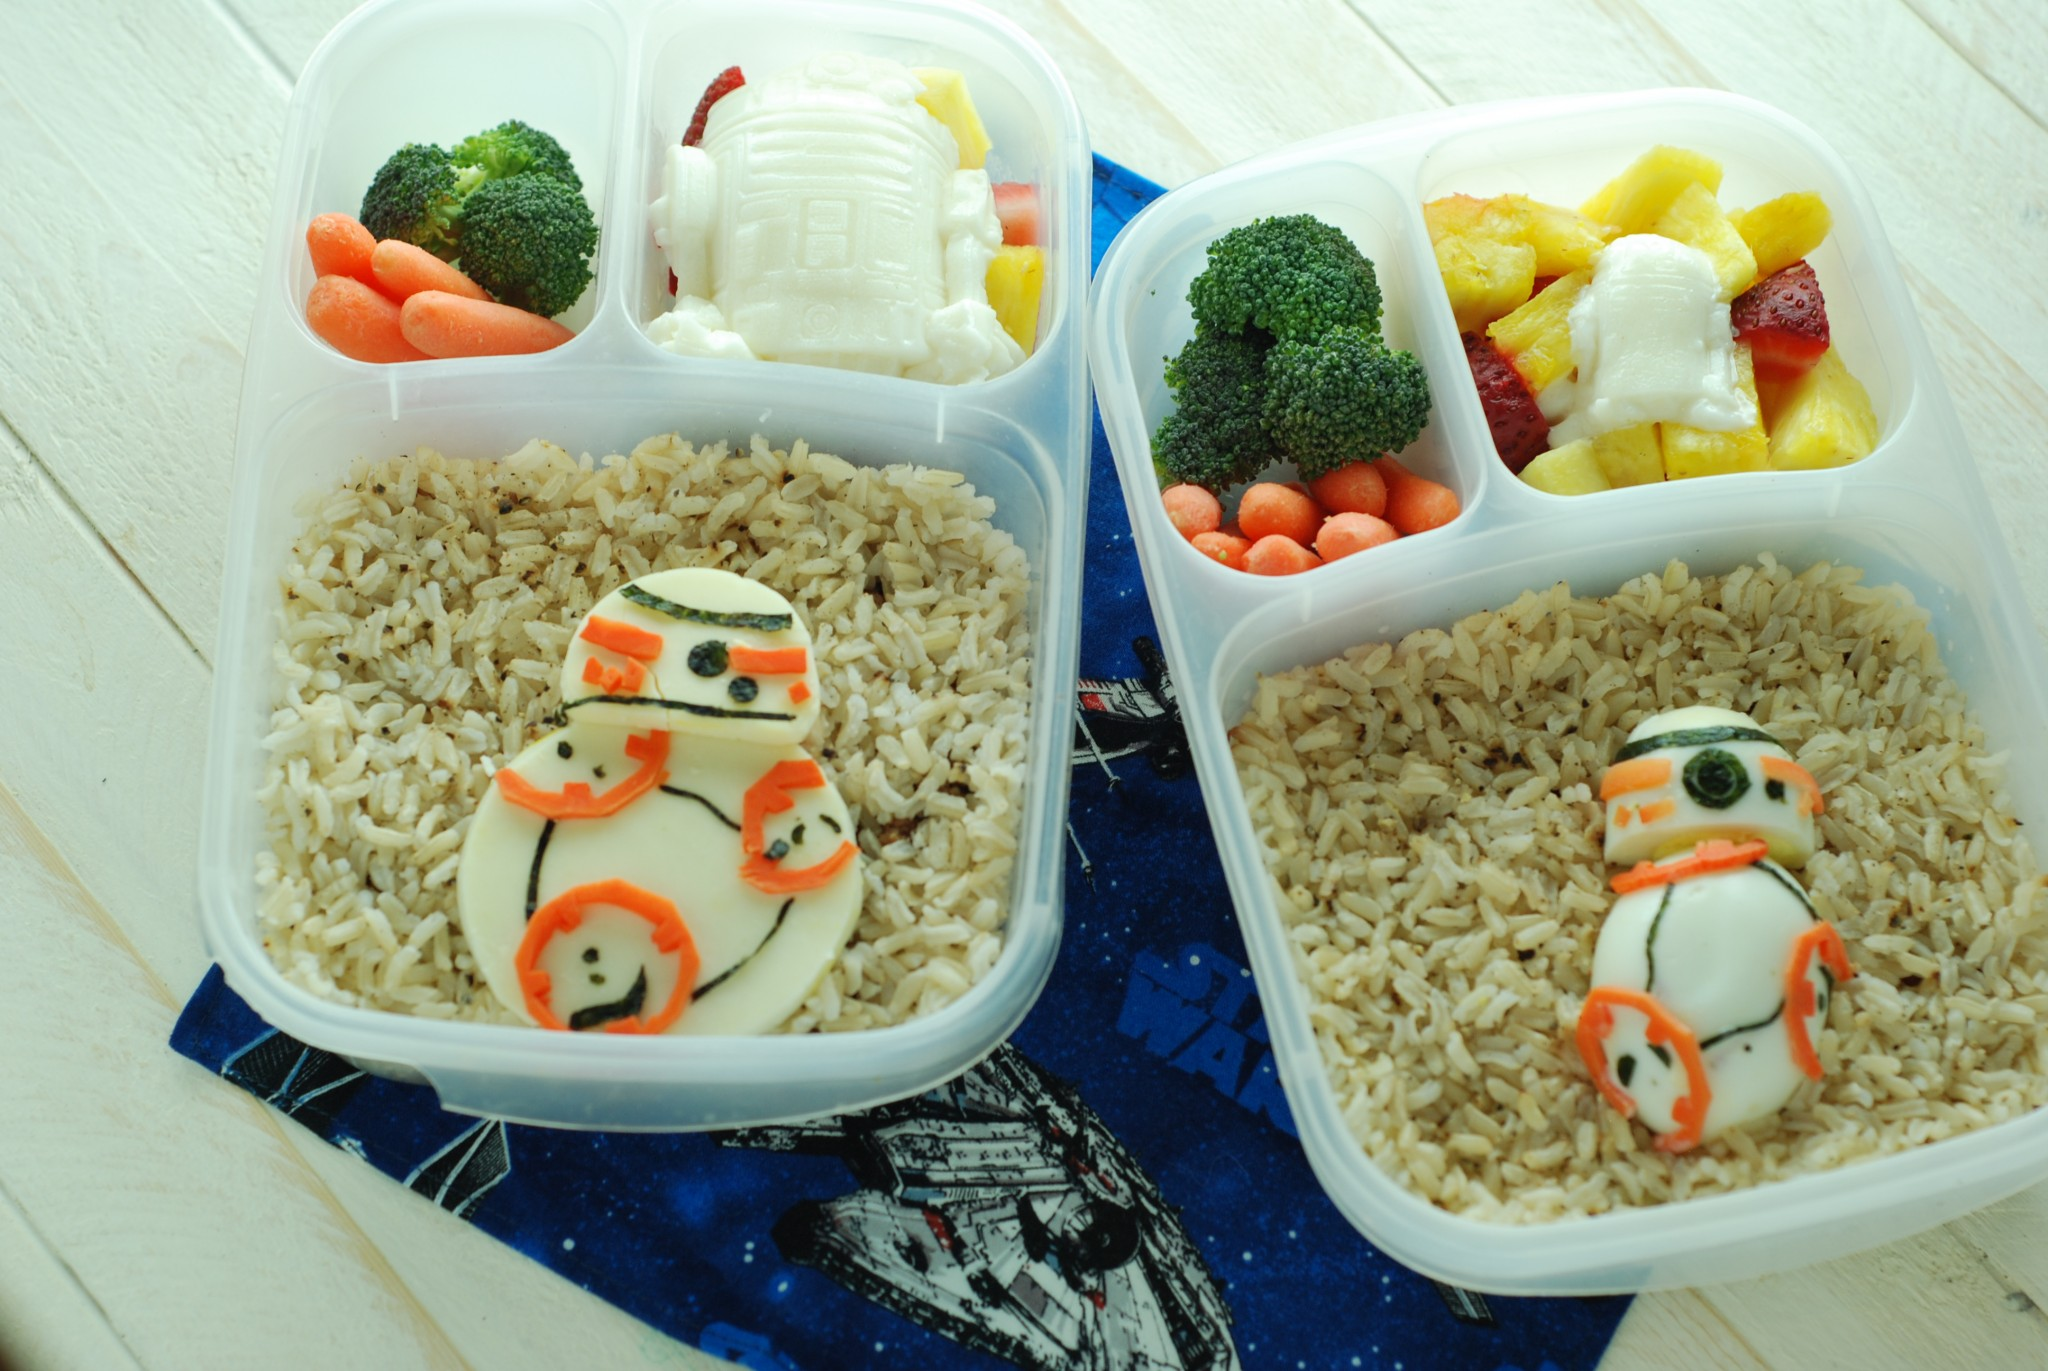 These BB-8 are made from cheese, nori, carrot, and boiled egg